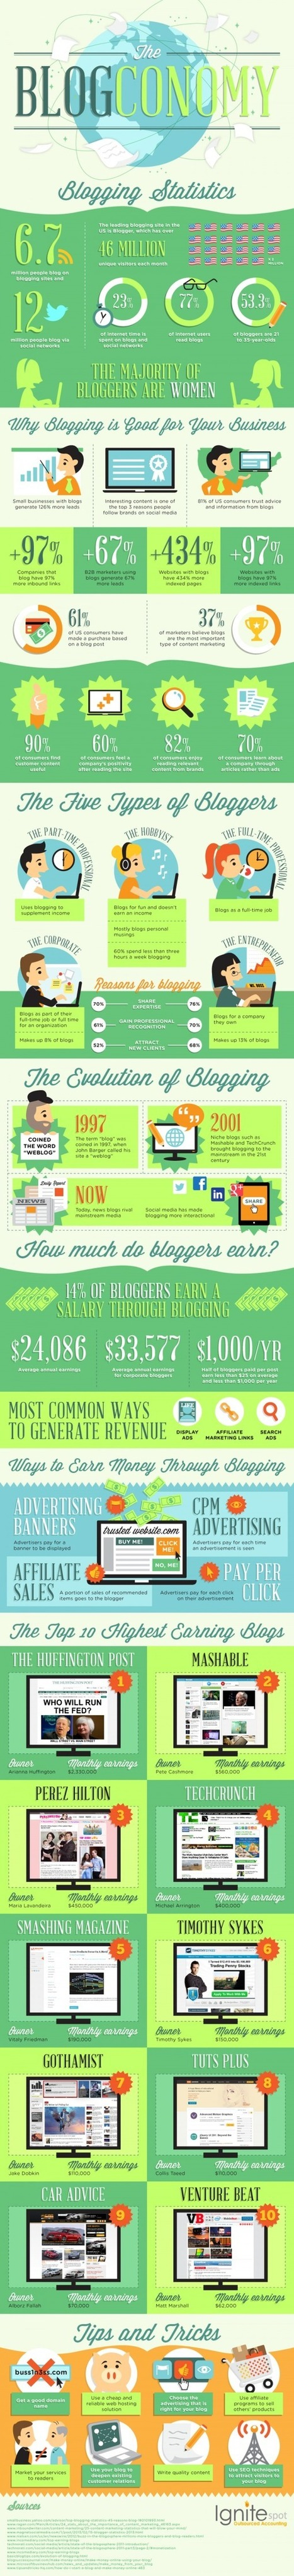 The Blogconomy [infographic] | Business in a Social Media World | Scoop.it